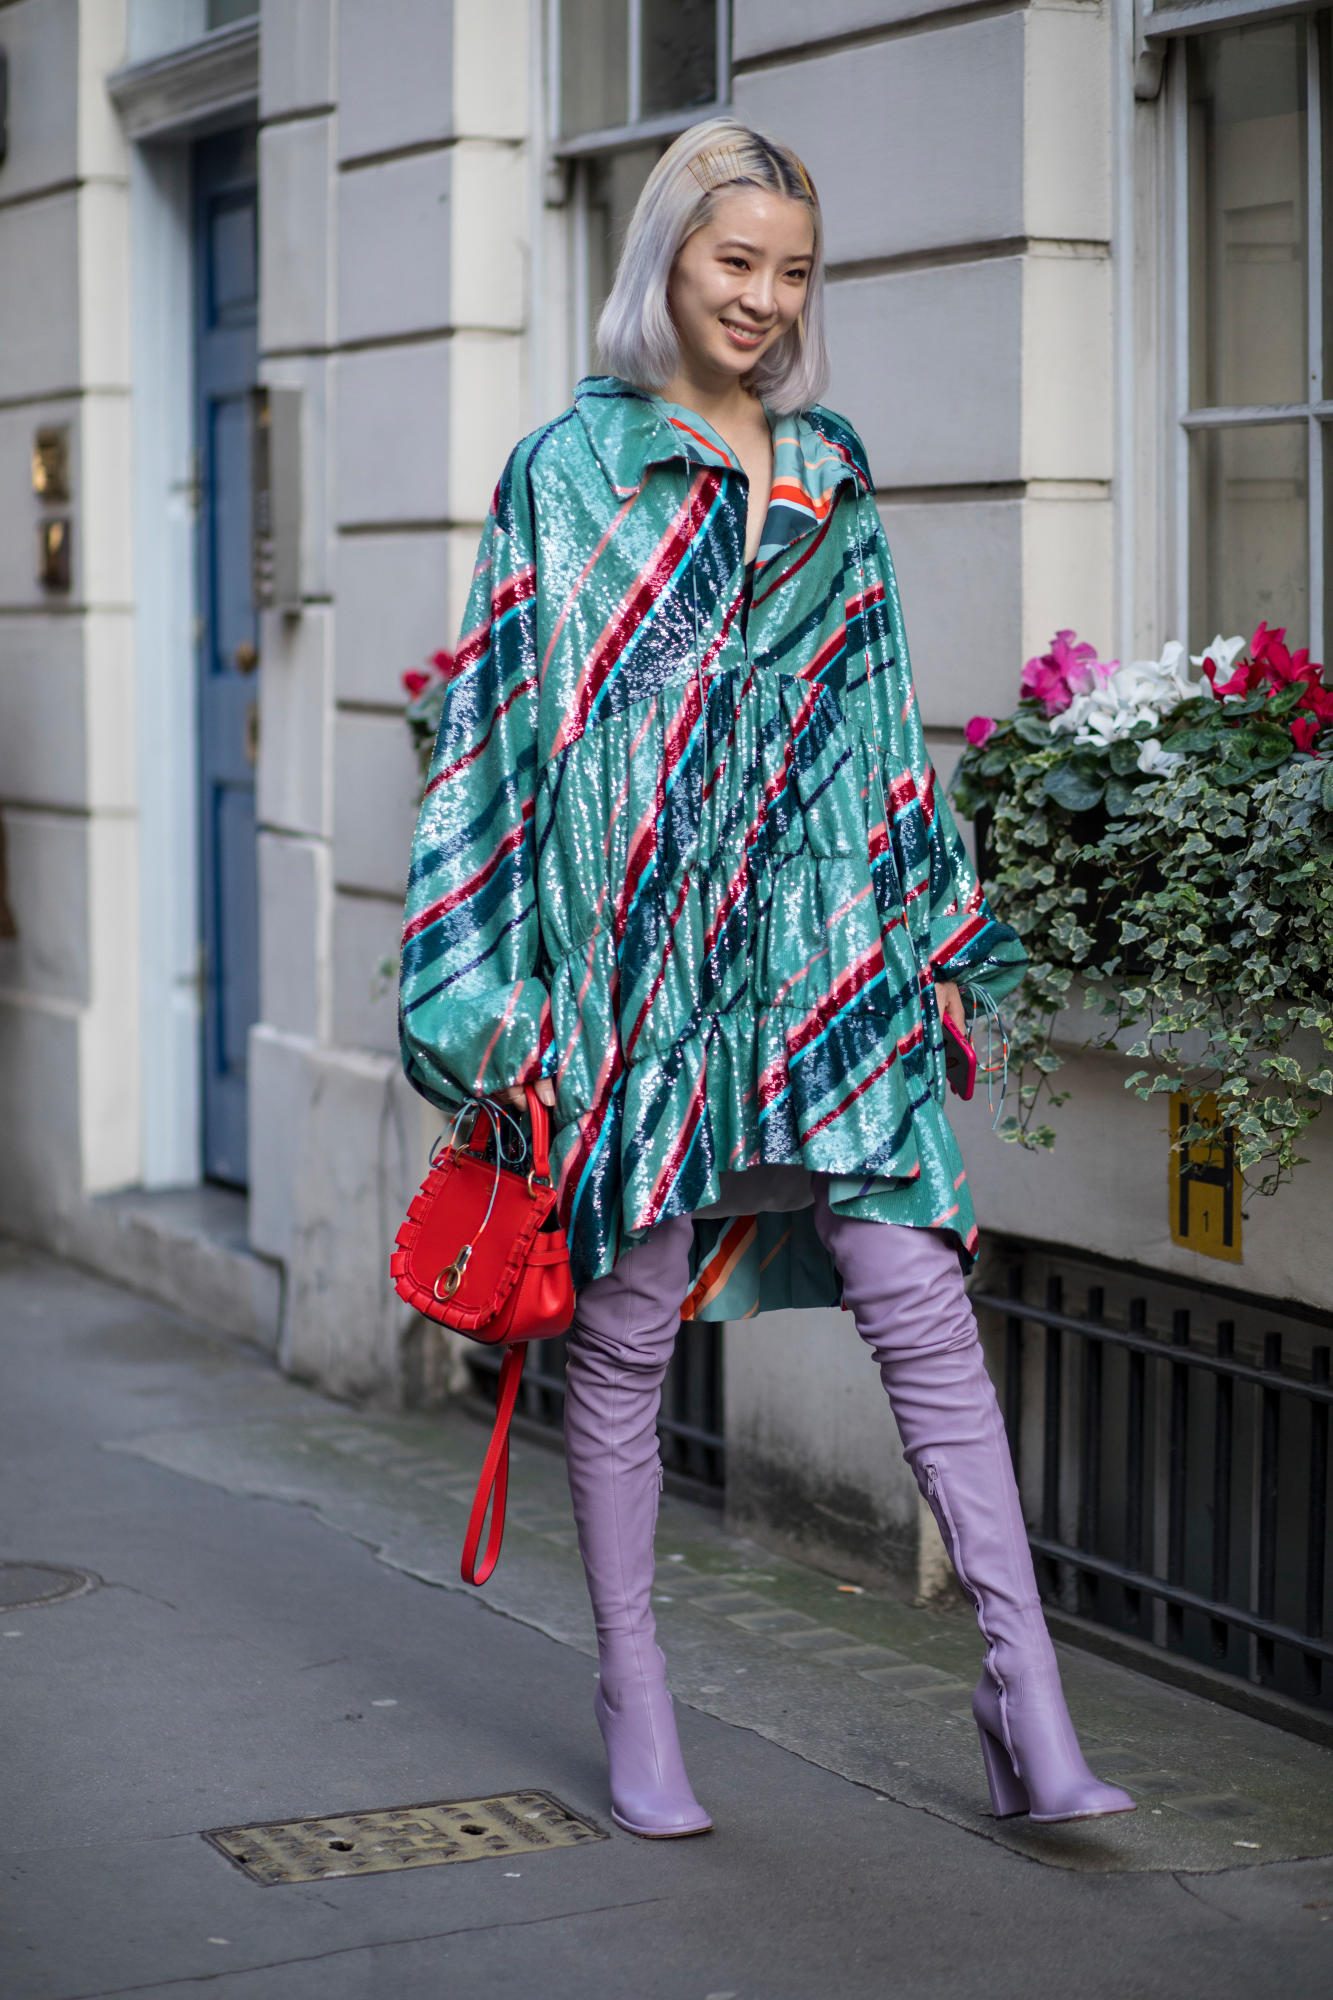 street london week fall outfits chic looks autumn moda outfit modeideeen zapisano straatstijl guardado desde uploaded